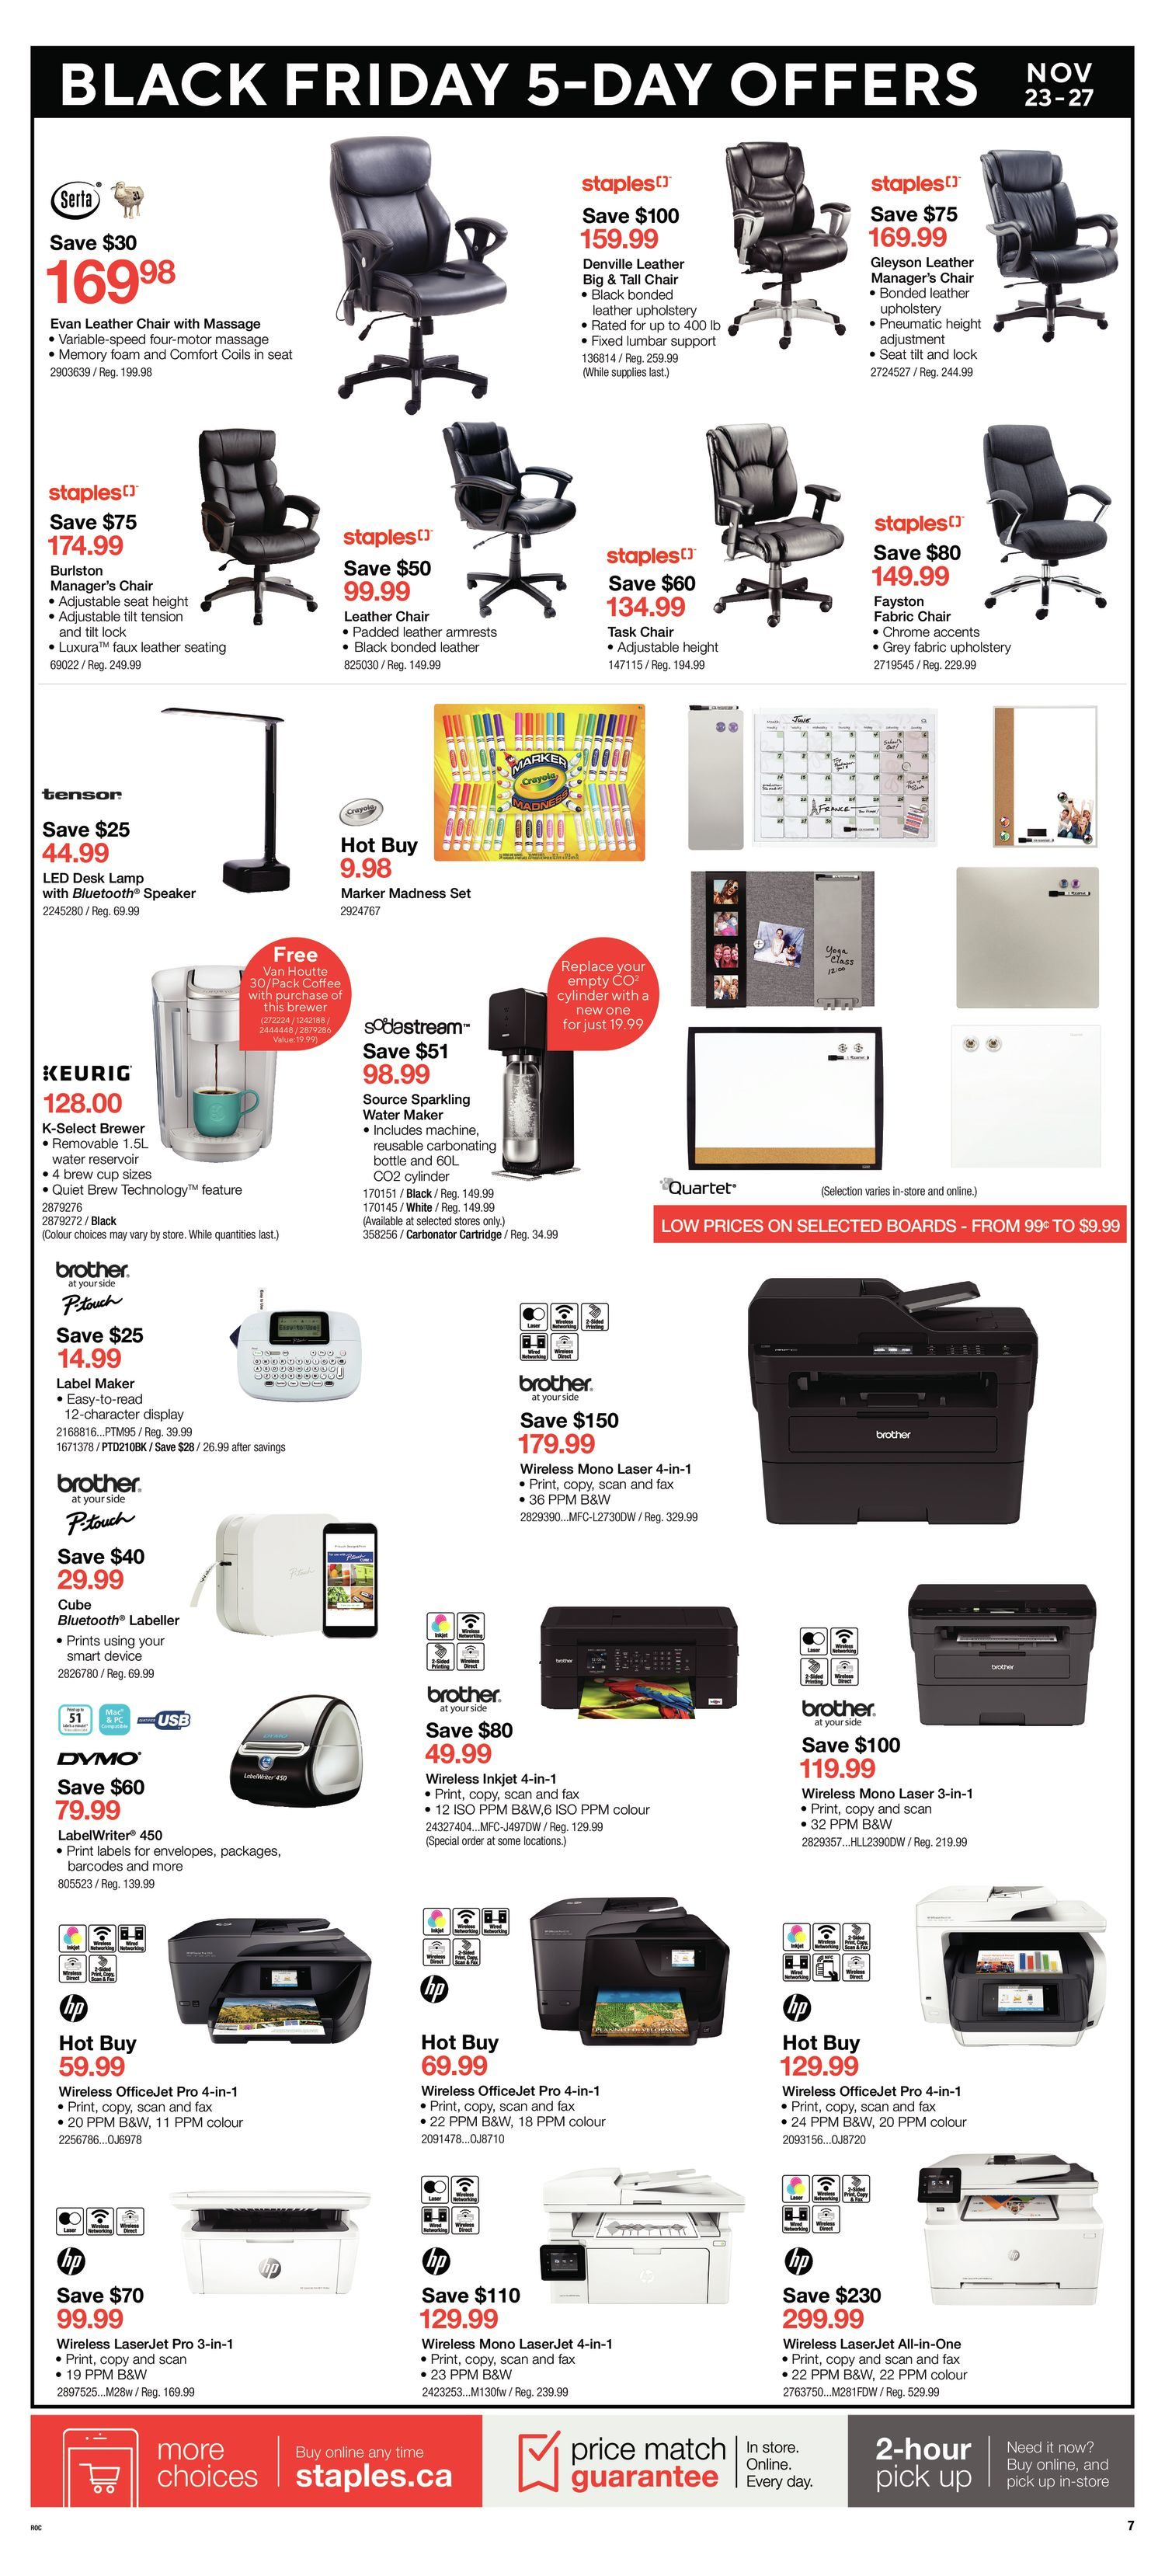 Staples Weekly Flyer - Black Friday Offers - Nov 23 – 27